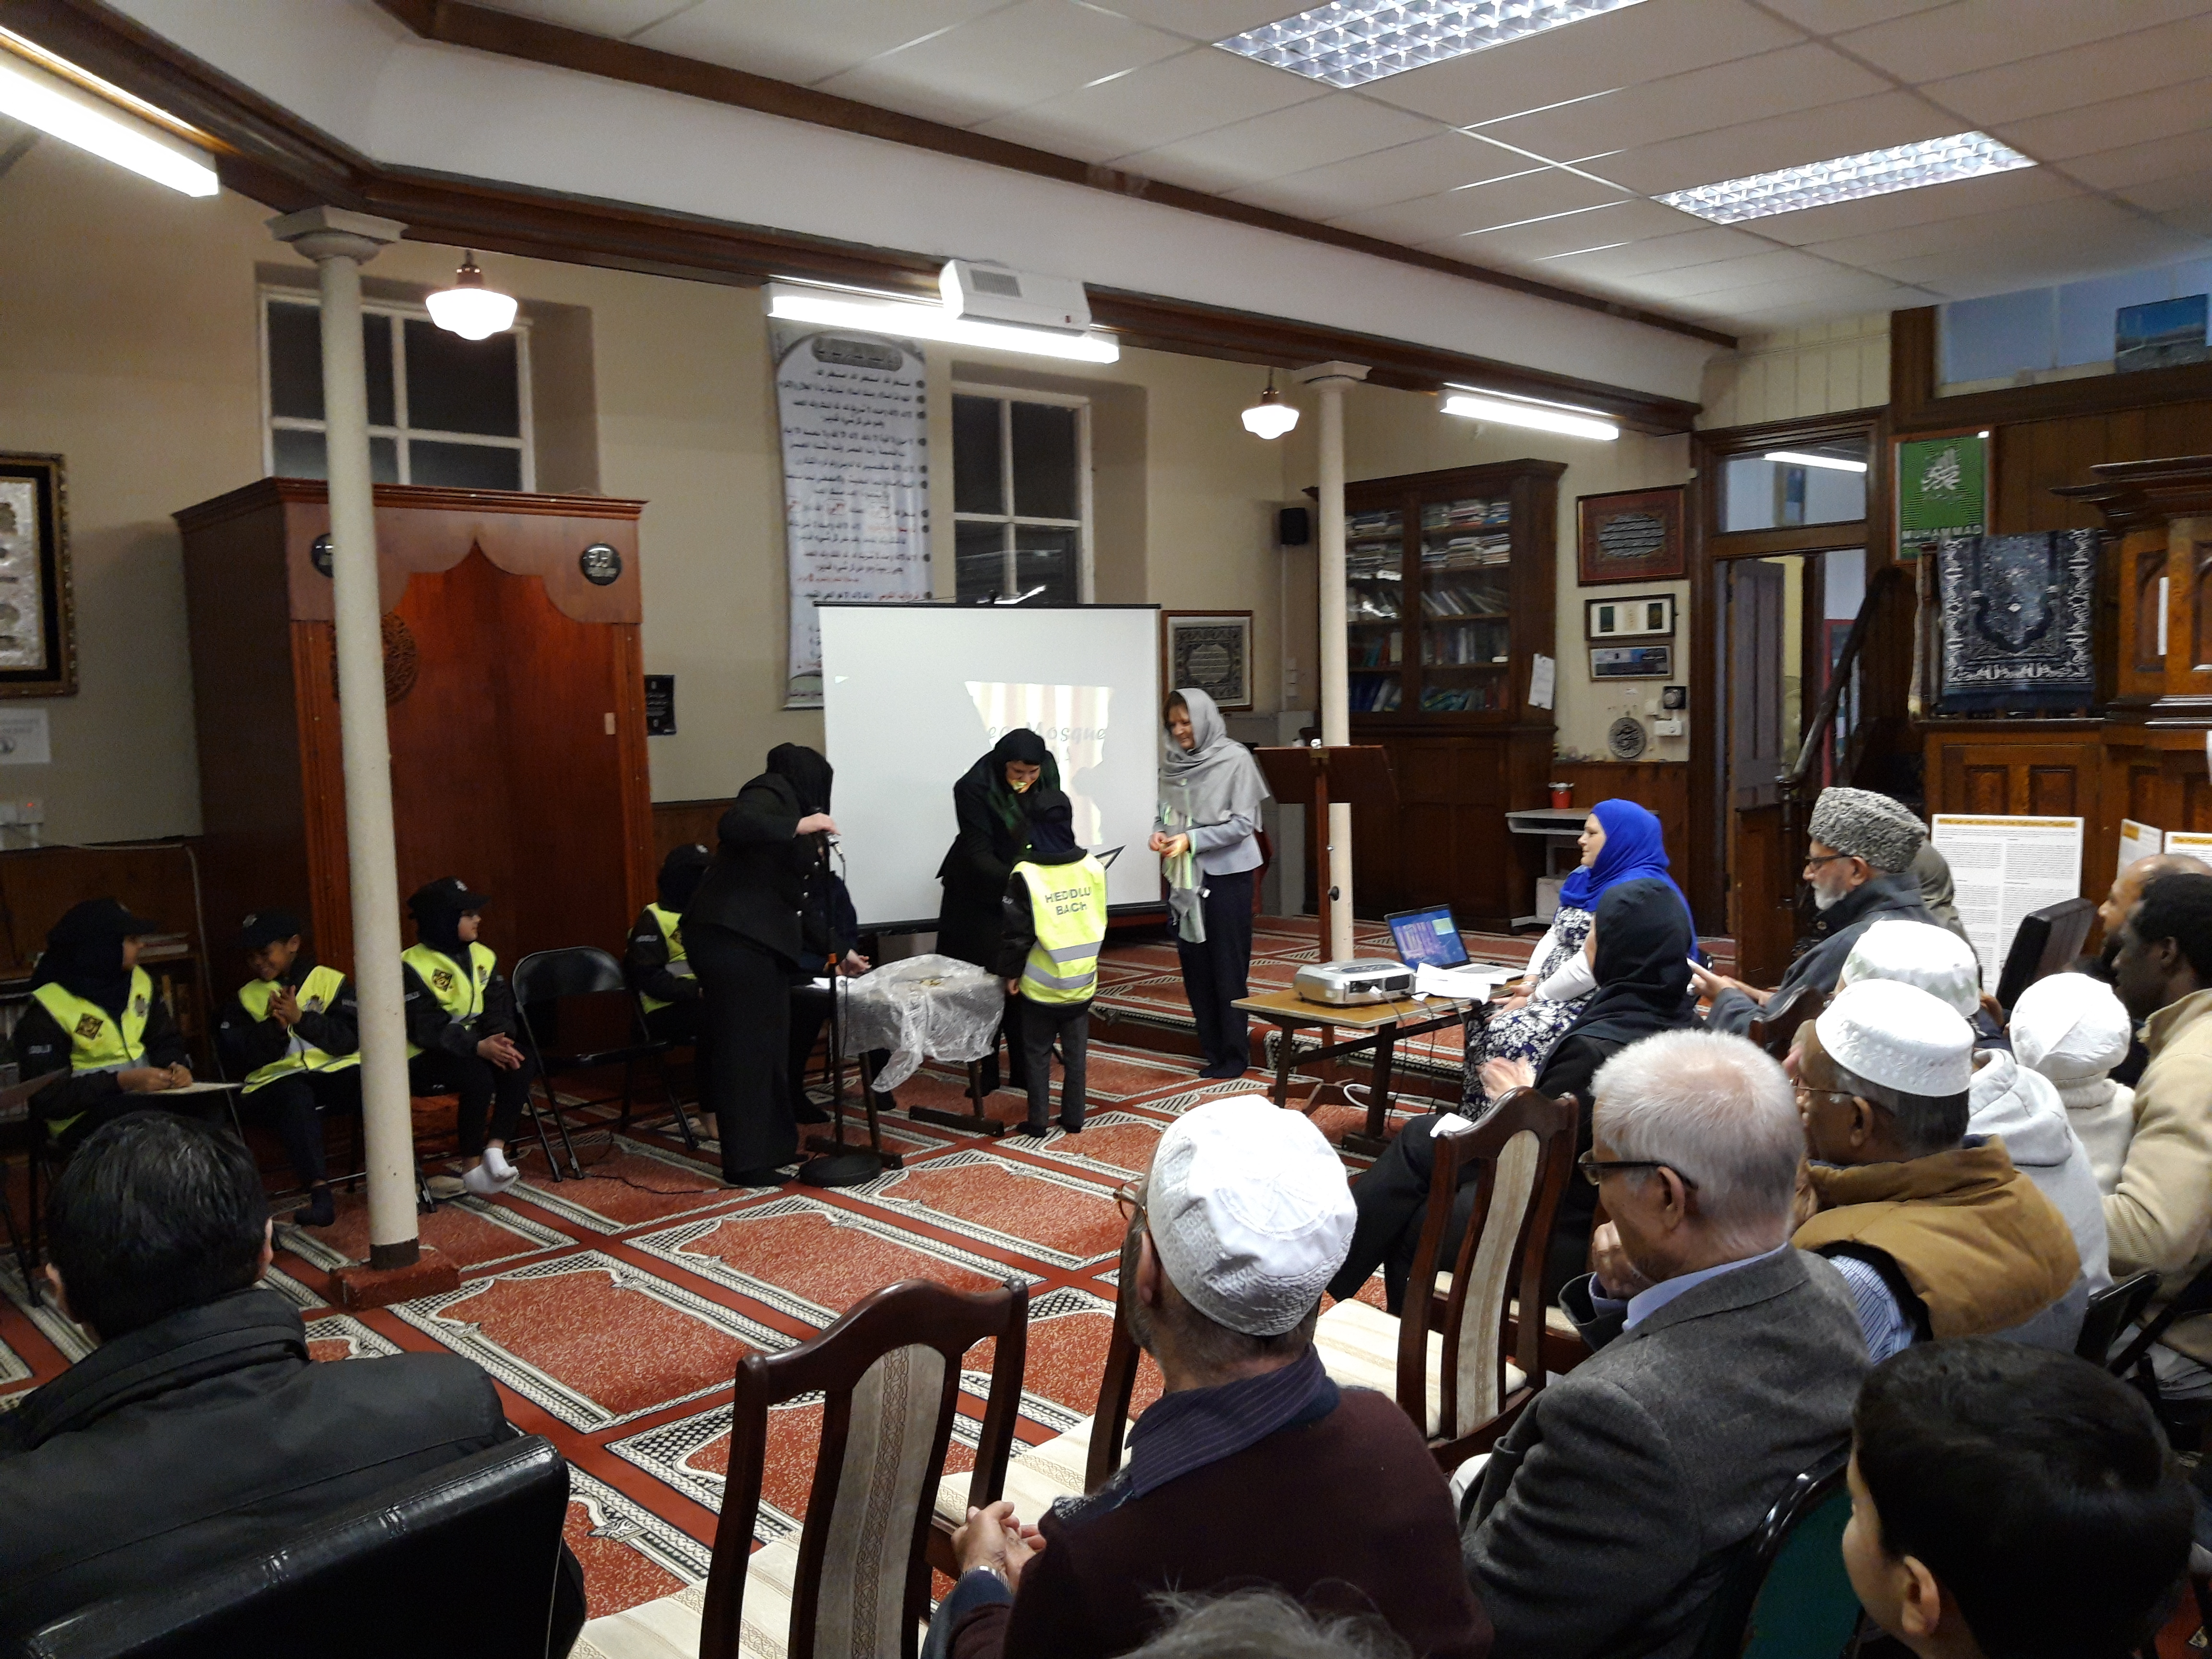 Gwent Police sets up first Heddlu Bach/Mini Police unit in Wales and the UK linked to a mosque